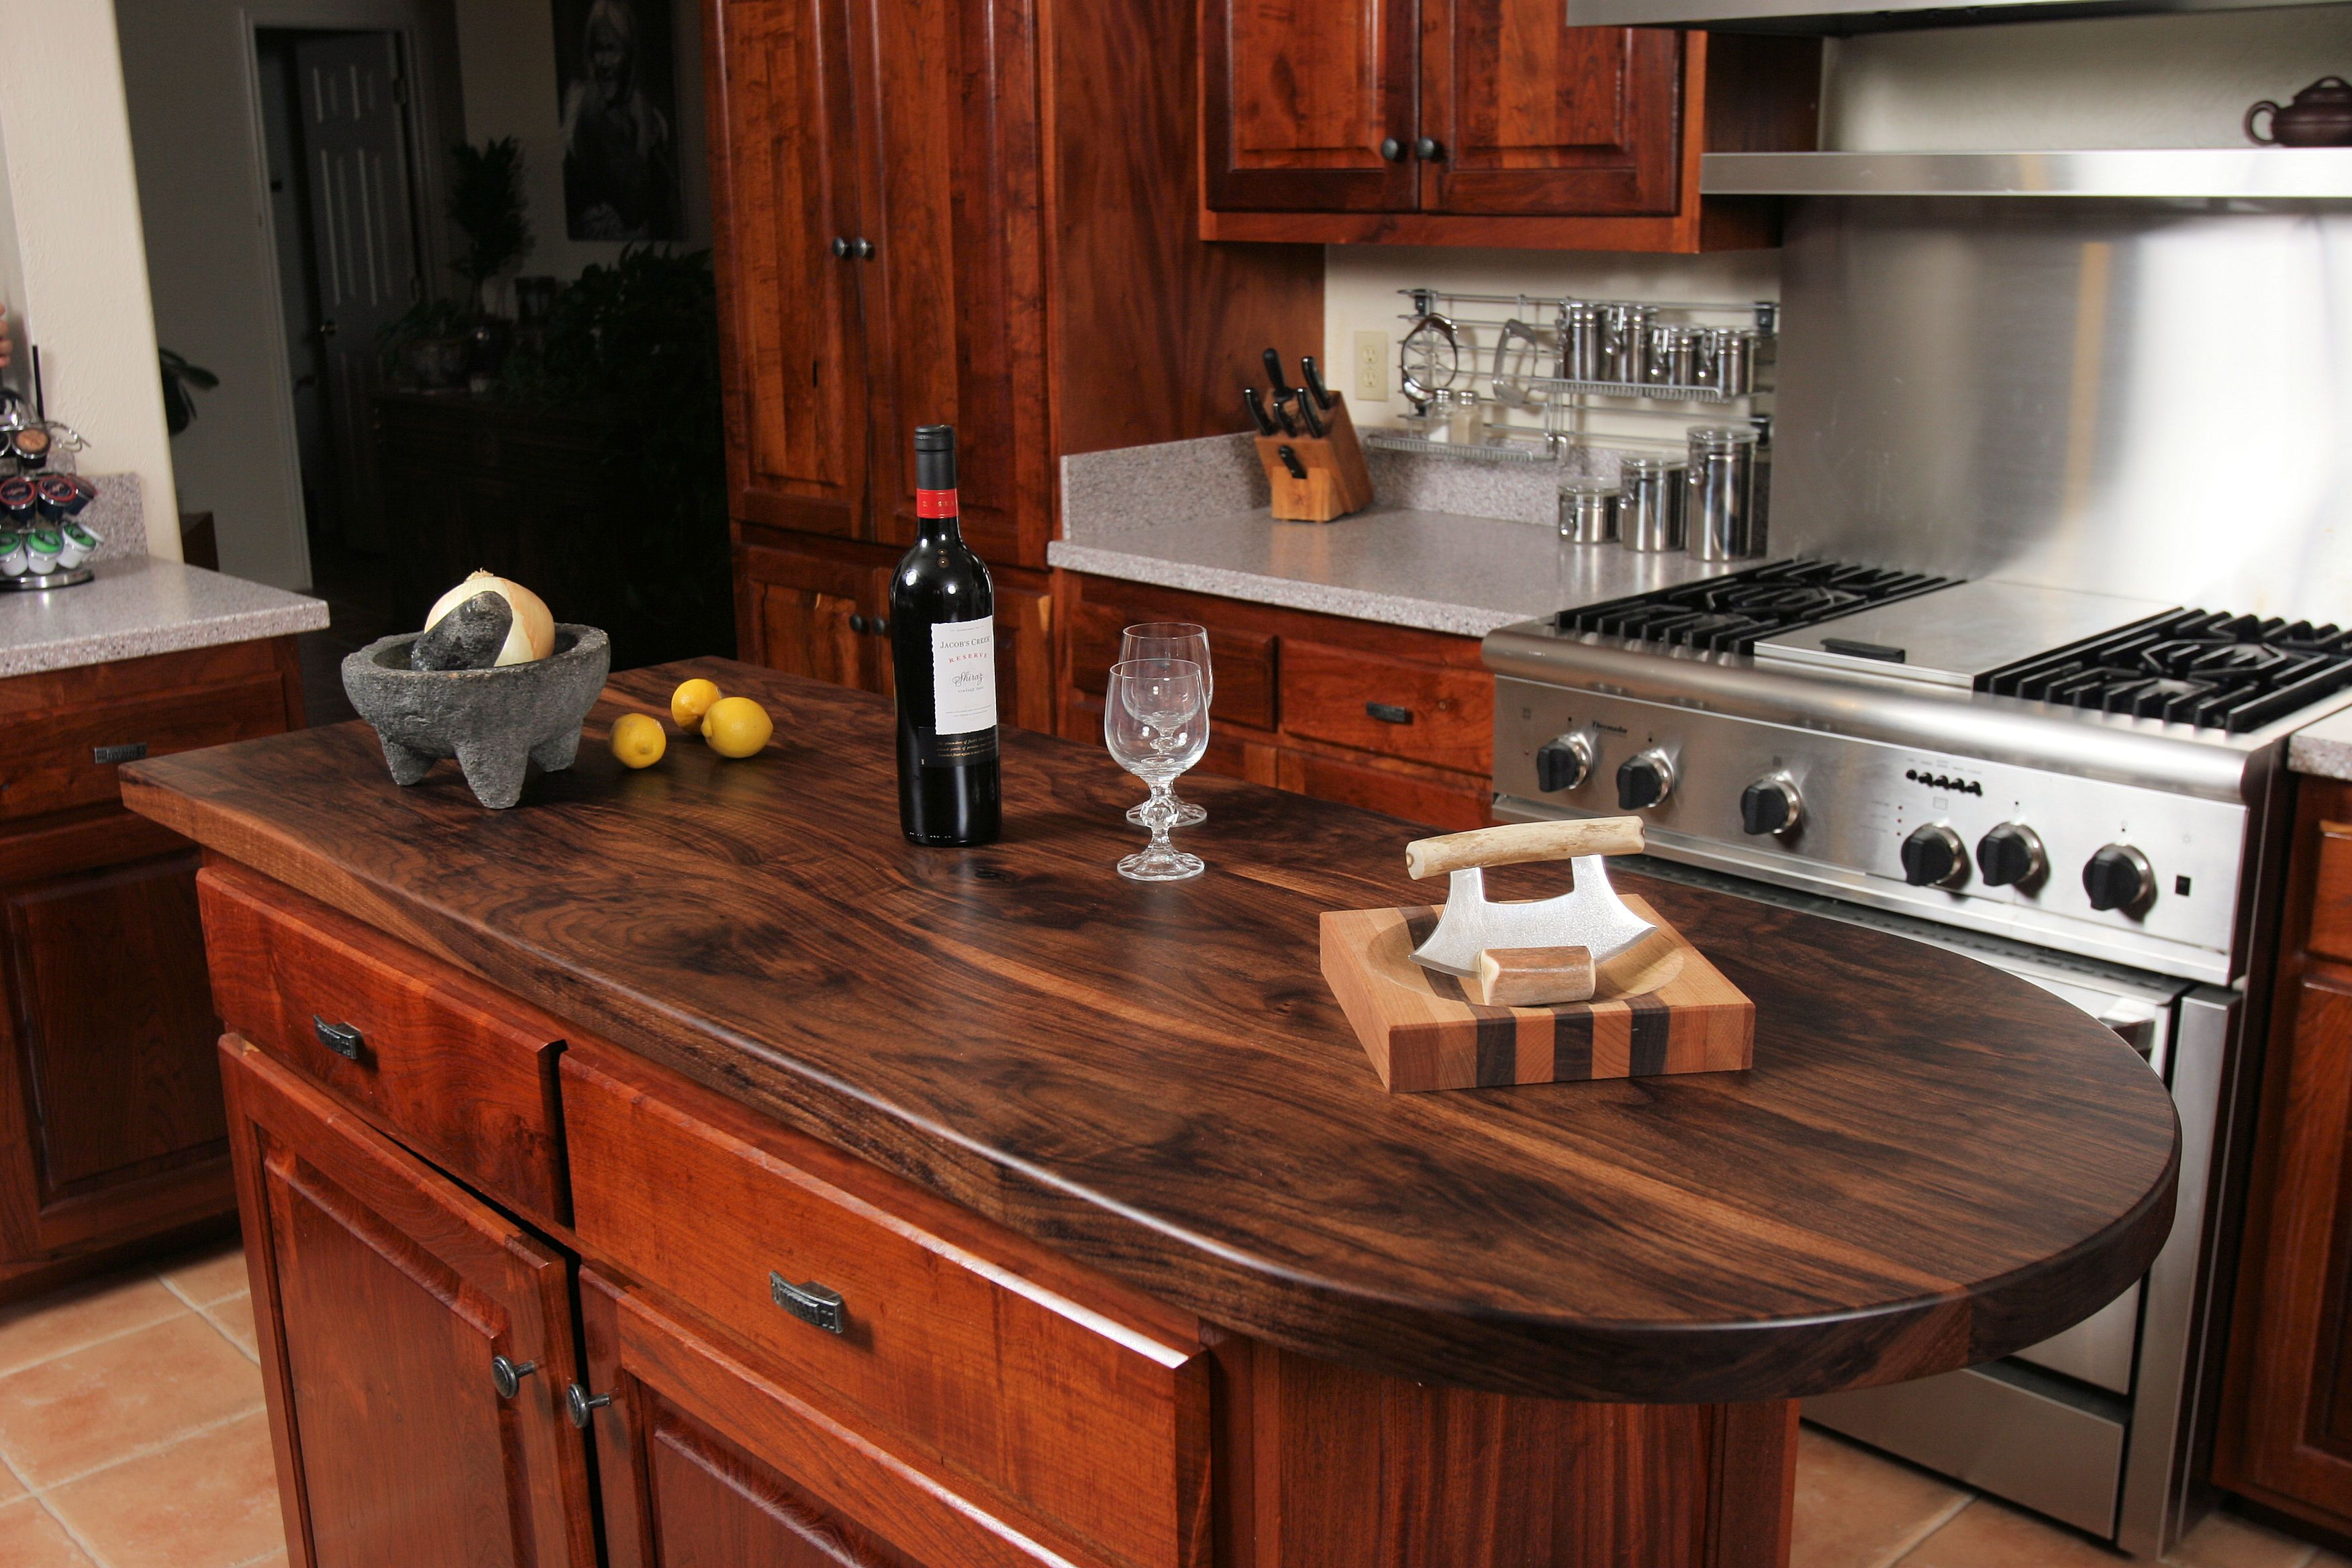 How To Waterproof Wood Countertop Custom Wood Countertop Options Finishes